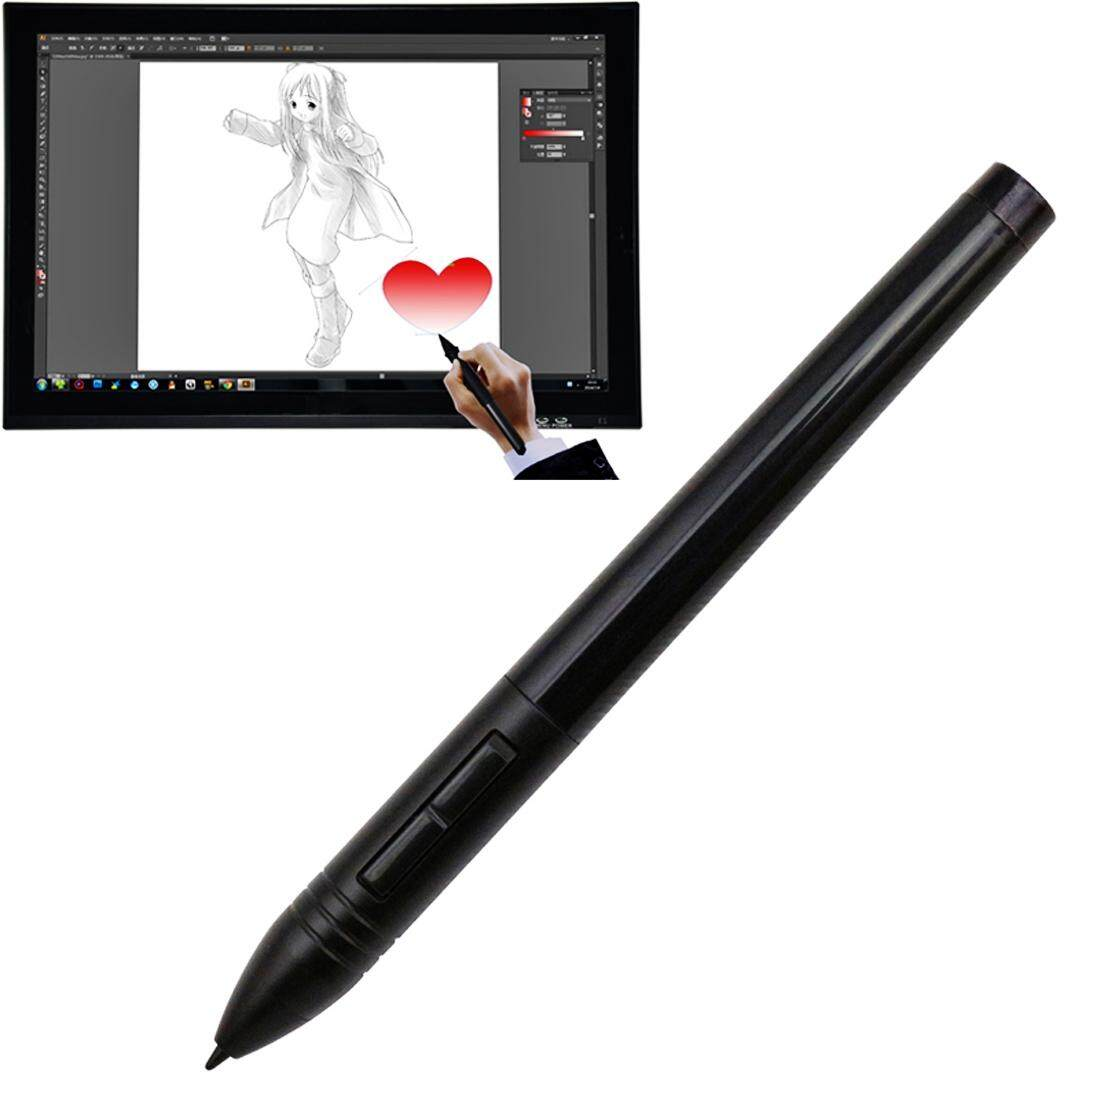 Hình ảnh Huion P80 Wireless USB Digital Pen Stylus Rechargeable Mouse Digitizer Pen for Huion Graphics Tablet(Black)